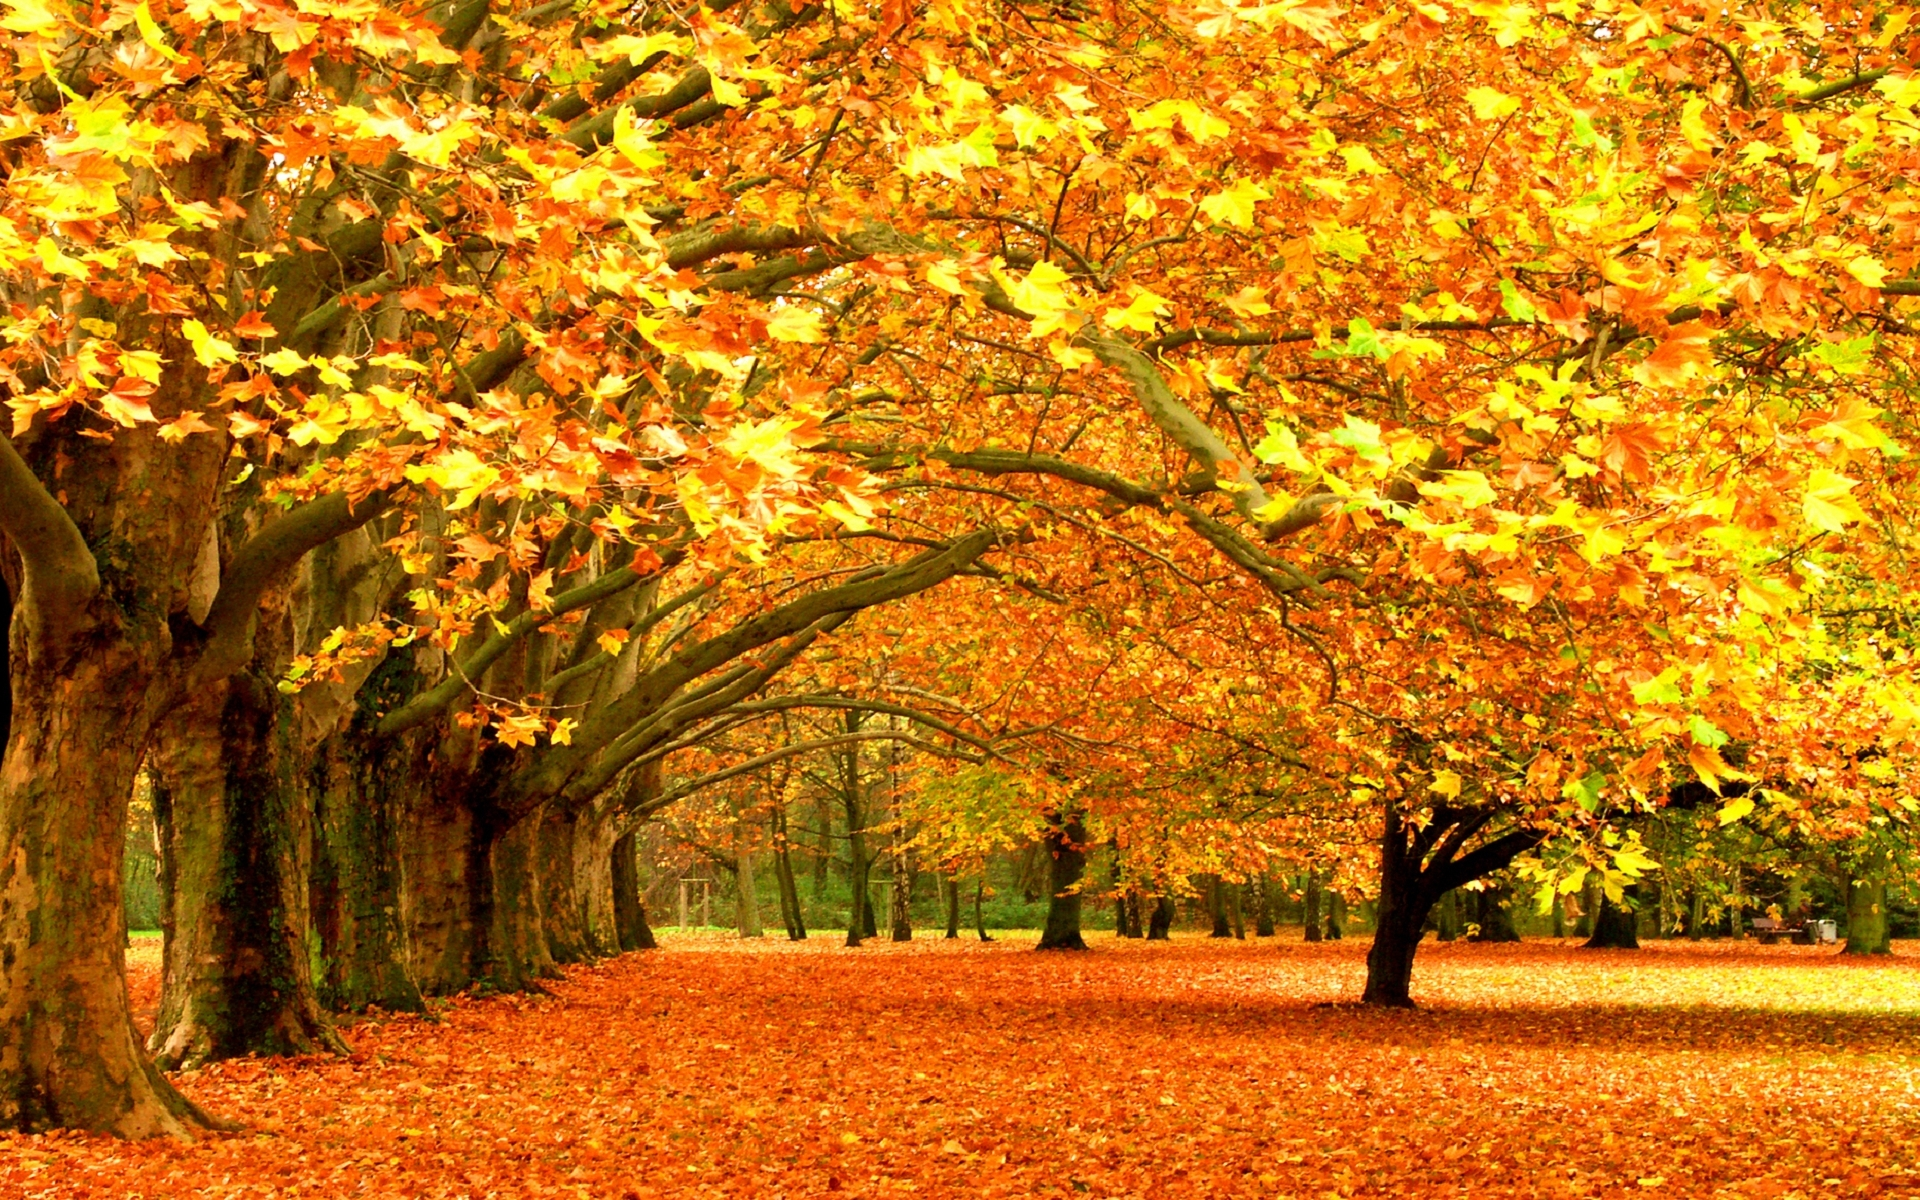 29854 download wallpaper Landscape, Trees, Autumn, Leaves screensavers and pictures for free